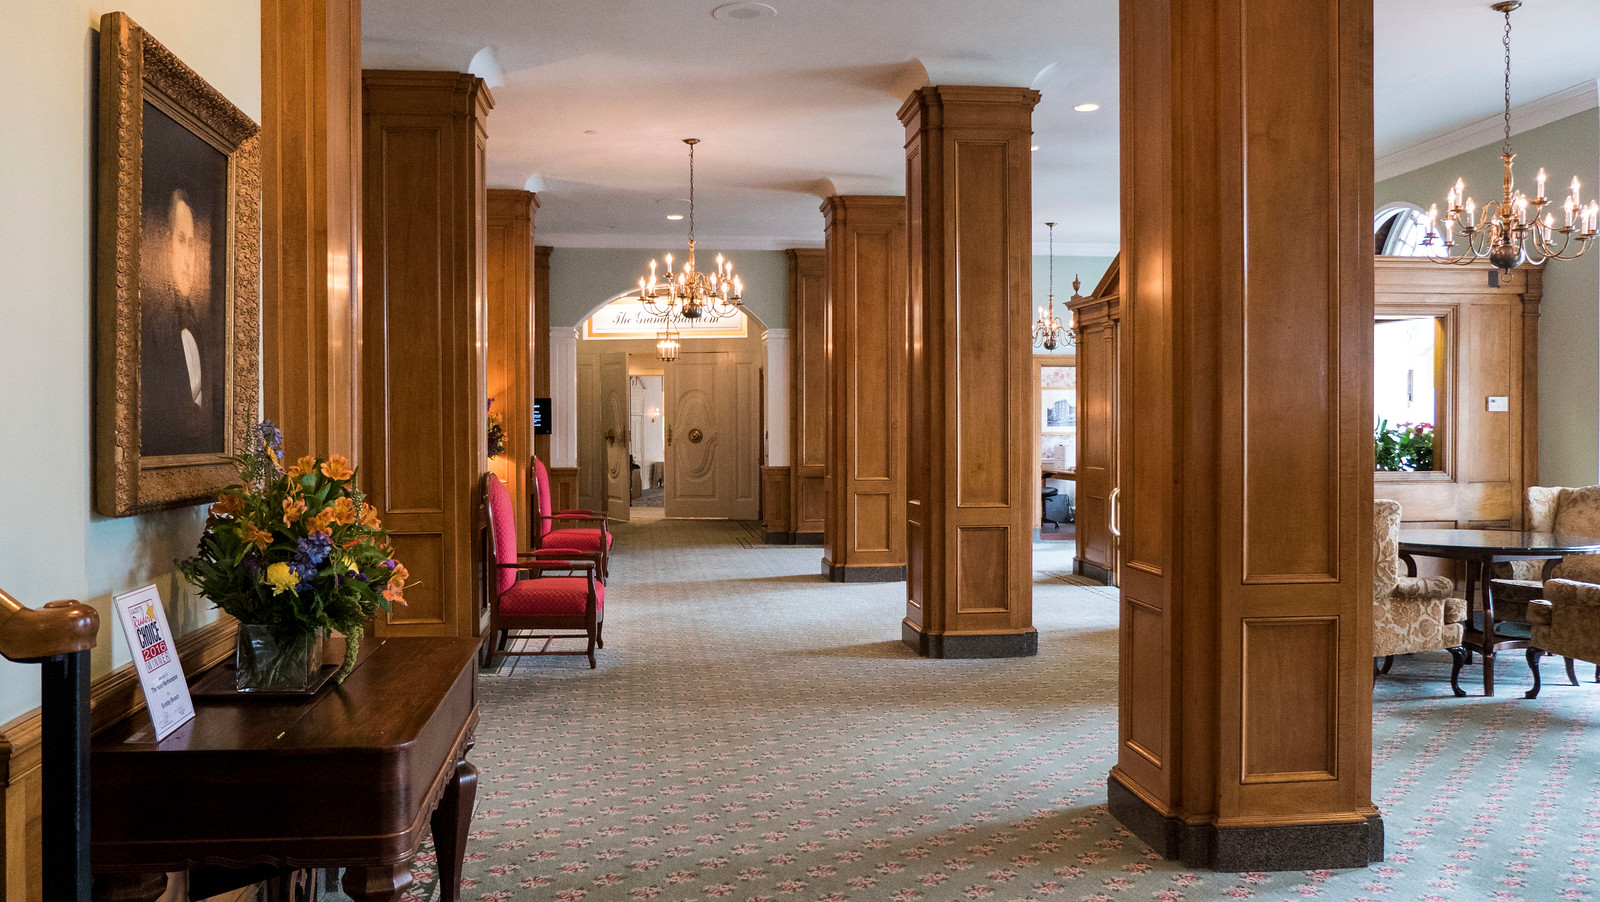 Hotel Northampton: Stay Here to Explore Western MA